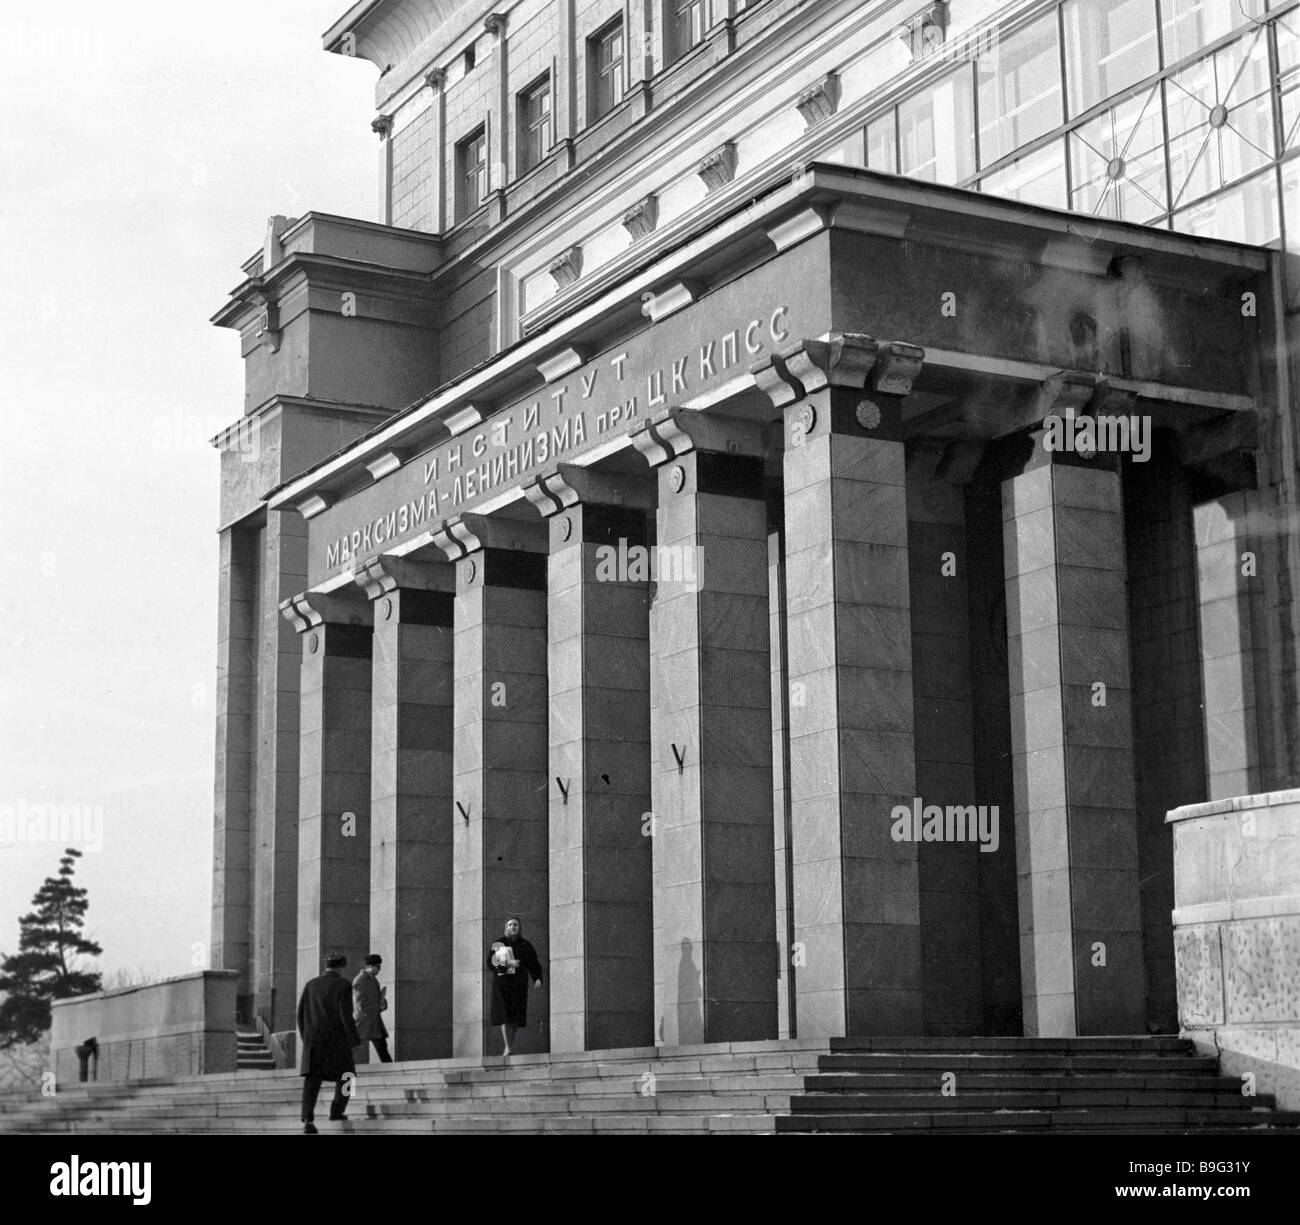 Building of the Institute of Marxism Leninism at the CPSU central committee - Stock Image